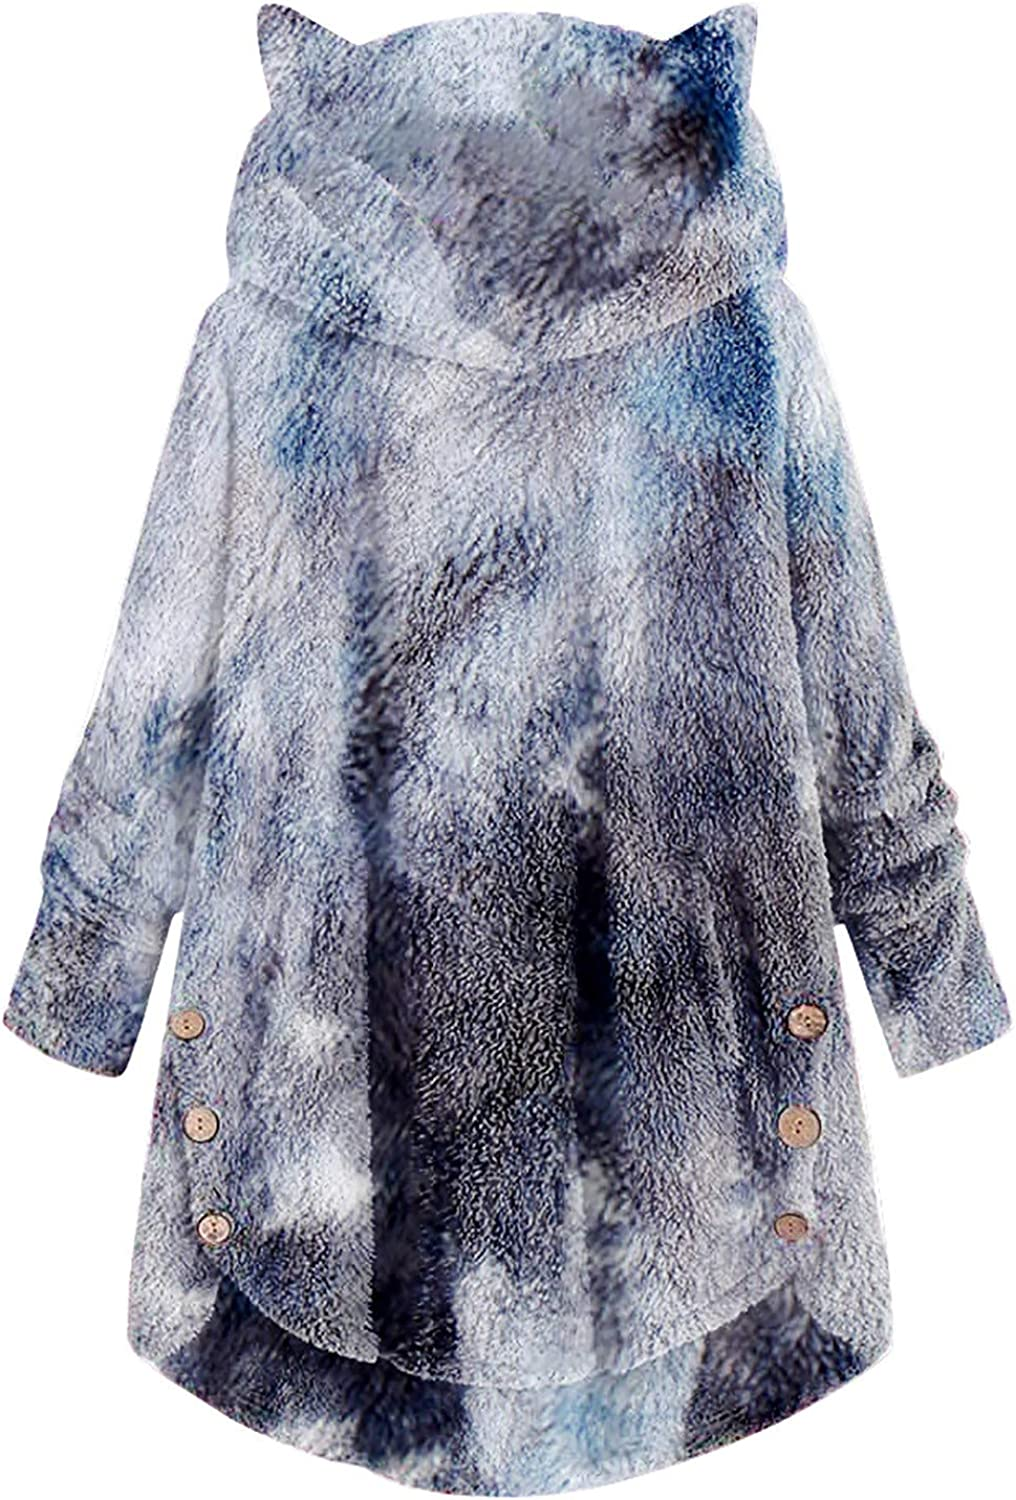 Eduavar Womens Winter Warm Limited price Hooded Thicken Oversize Coat Fuzzy Max 77% OFF Fl